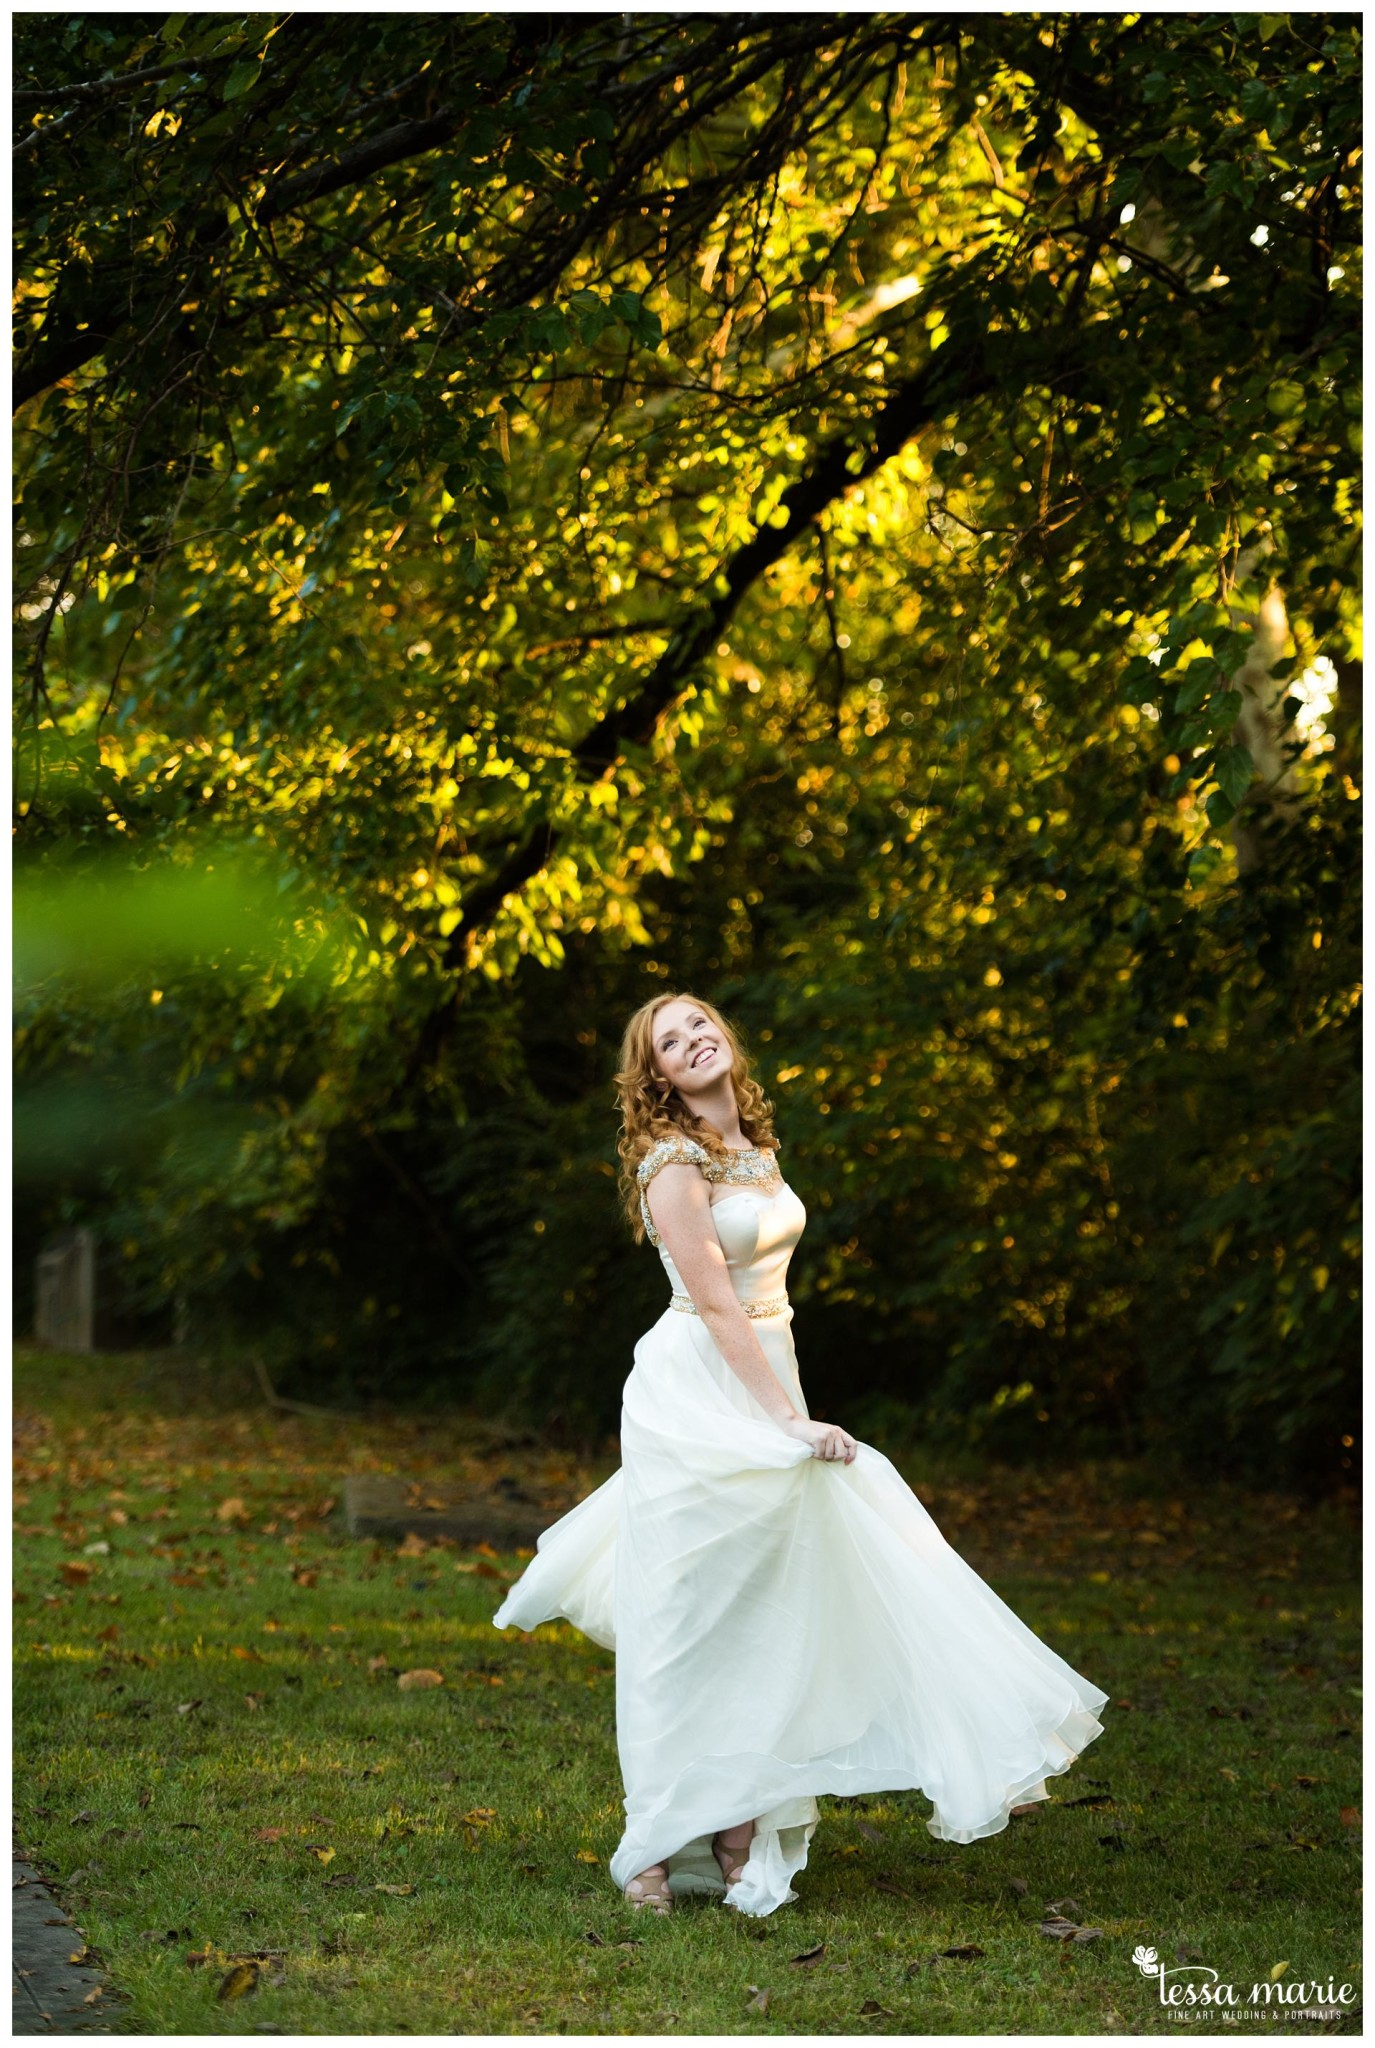 tessa_marie_weddings_legacy_story_focused_wedding_pictures_atlanta_wedding_photographer_family_pictures_portrait_Fine_art_memories_mothers_day_spring_moments_0334